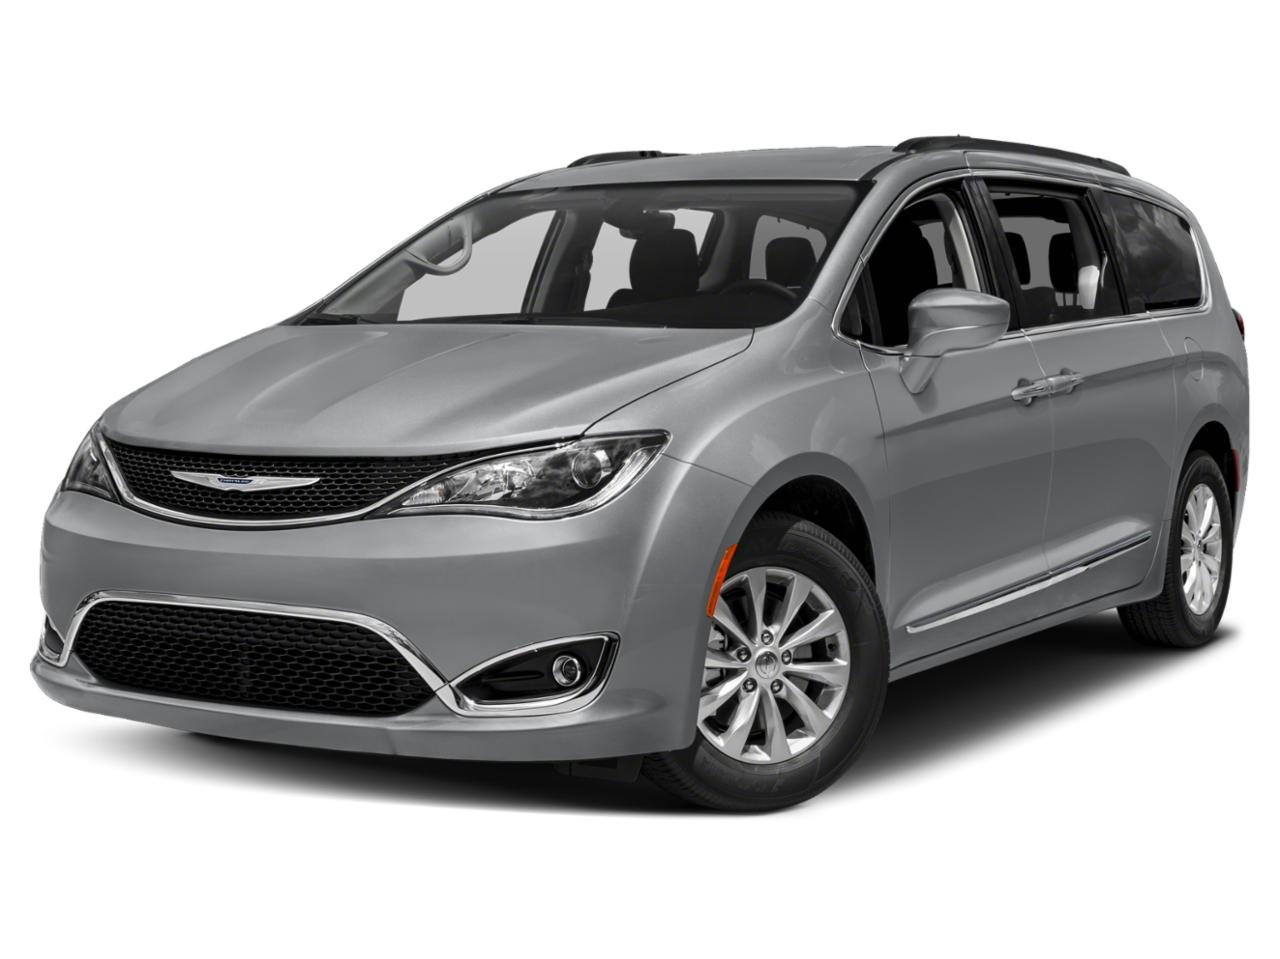 2019 Chrysler Pacifica Vehicle Photo in Neenah, WI 54956